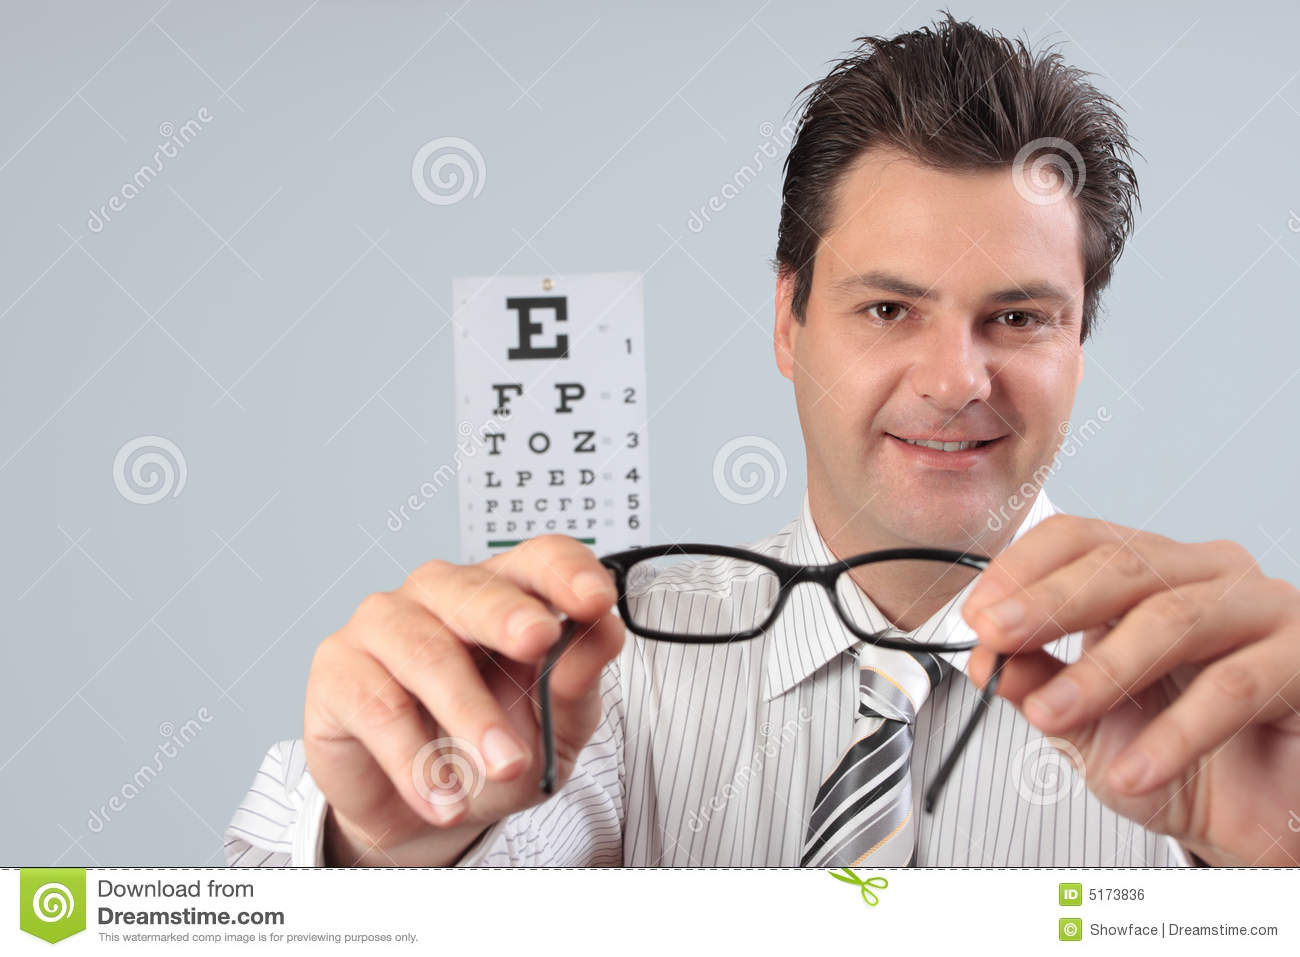 Florida Optometrist